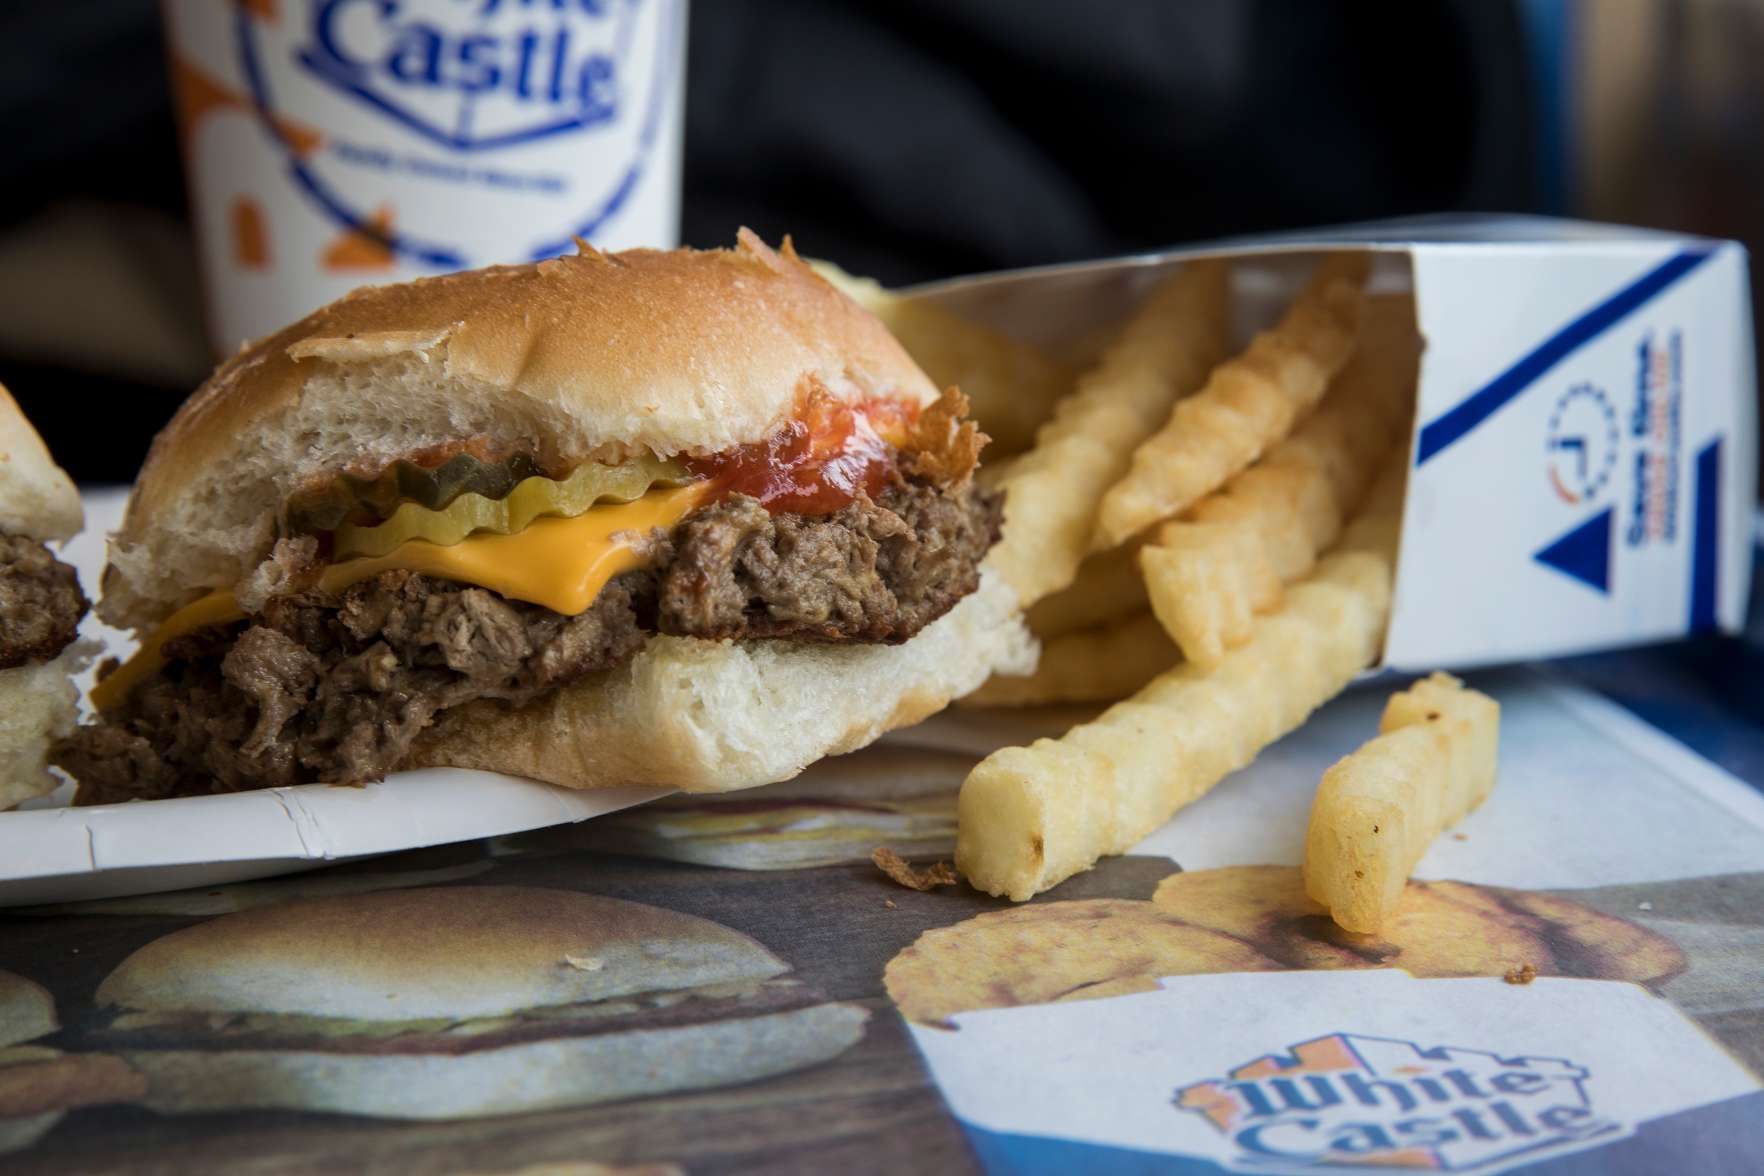 White Castle's National Slider Day is being celebrated Tuesday, May 15, with free sliders for all customers.